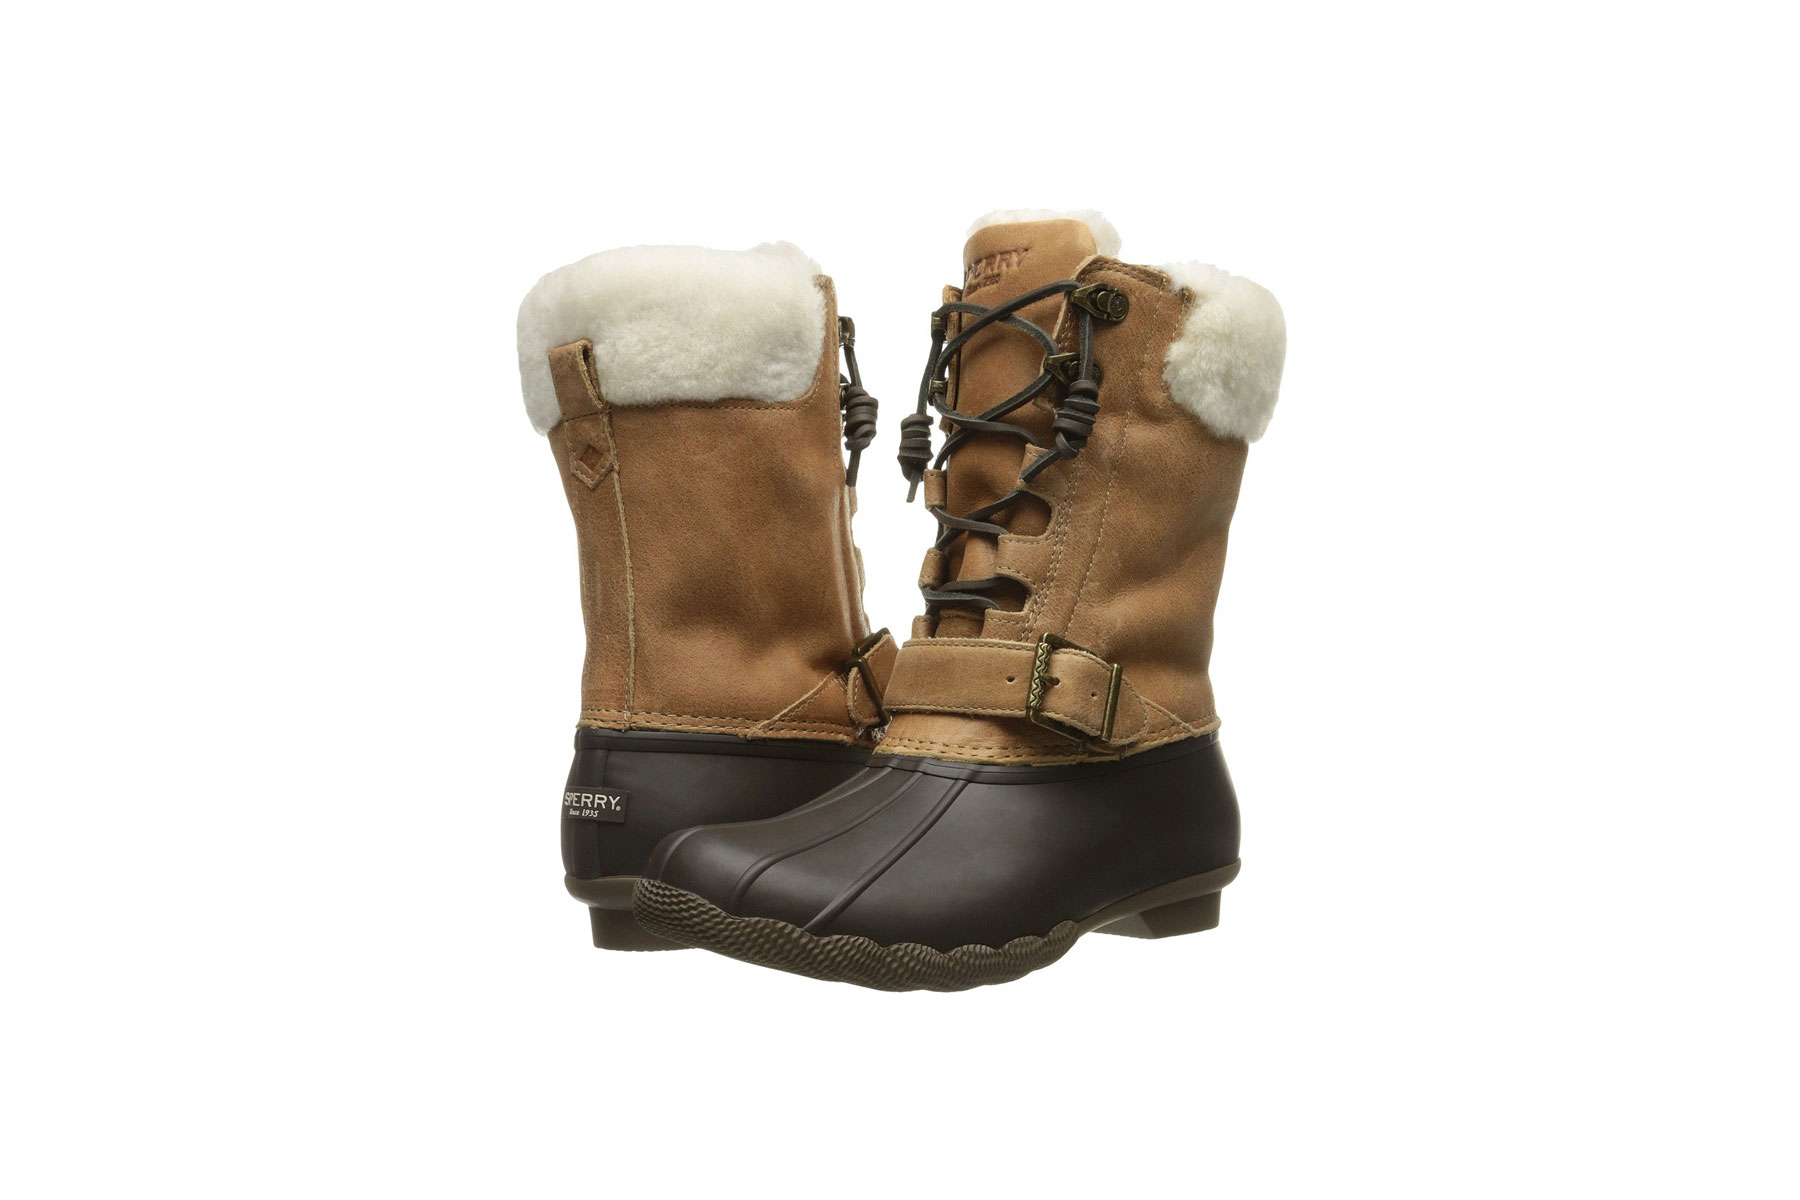 95e0876a4268 6 Comfy Winter Boots That Don t Sacrifice on Style